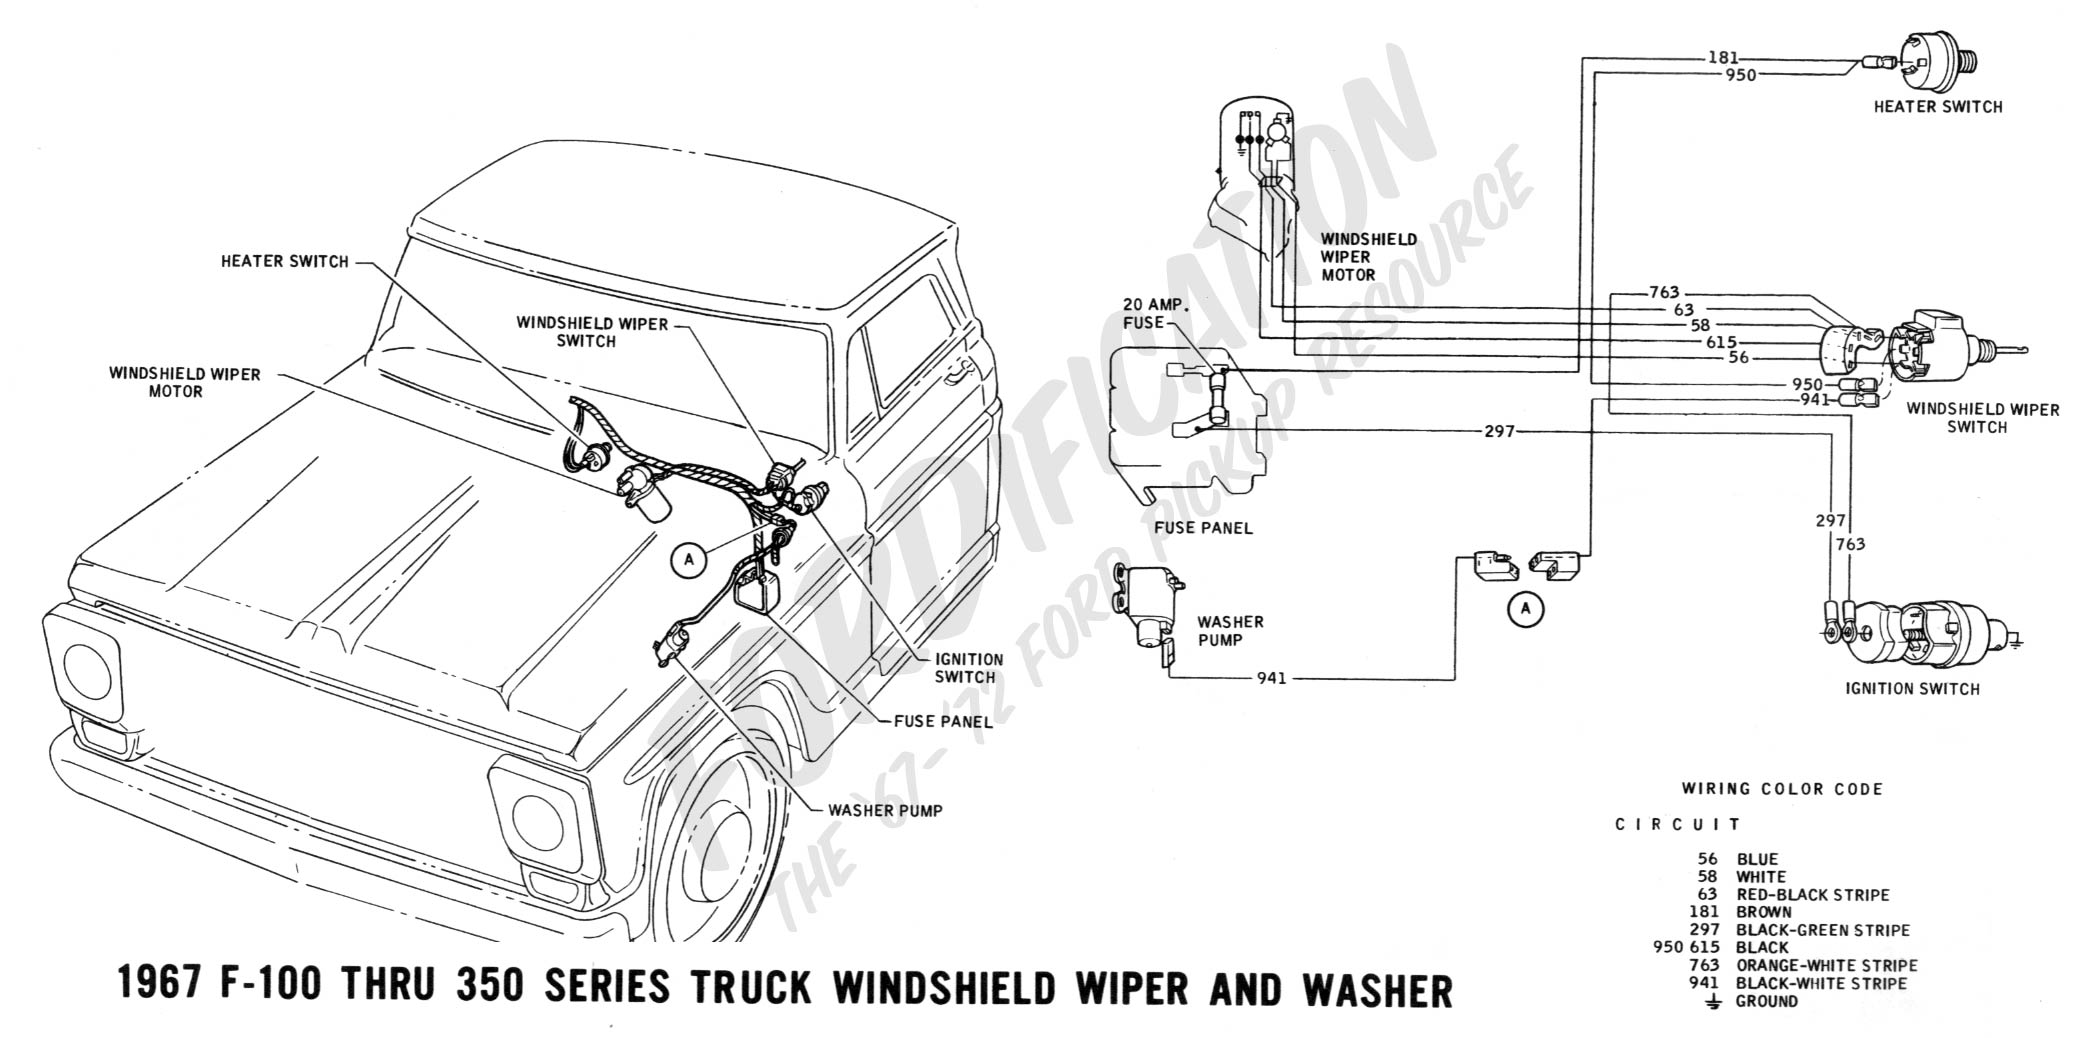 Wiring Diagram For Ford F on 1978 ford truck wiring diagram, 56 ford truck wiring diagram, 1973 ford wiring diagram, 1976 ford ignition wiring diagram, ford ignition switch wiring diagram, 1979 ford f-150 wiring diagram, 65 ford pickup 4x4, 65 ford truck parts, 65 chevelle wiring diagram, ford tractor starter solenoid wiring diagram, 1953 ford wiring diagram, 1966 ford wiring diagram, 65 ford f-250, 1954 ford wiring diagram, 1968 ford f-250 wiring diagram, 65 mustang engine diagram, 65 ford steering column wiring, ford f150 wiring diagram, 1957 ford wiring diagram, 1965 ford wiring diagram,